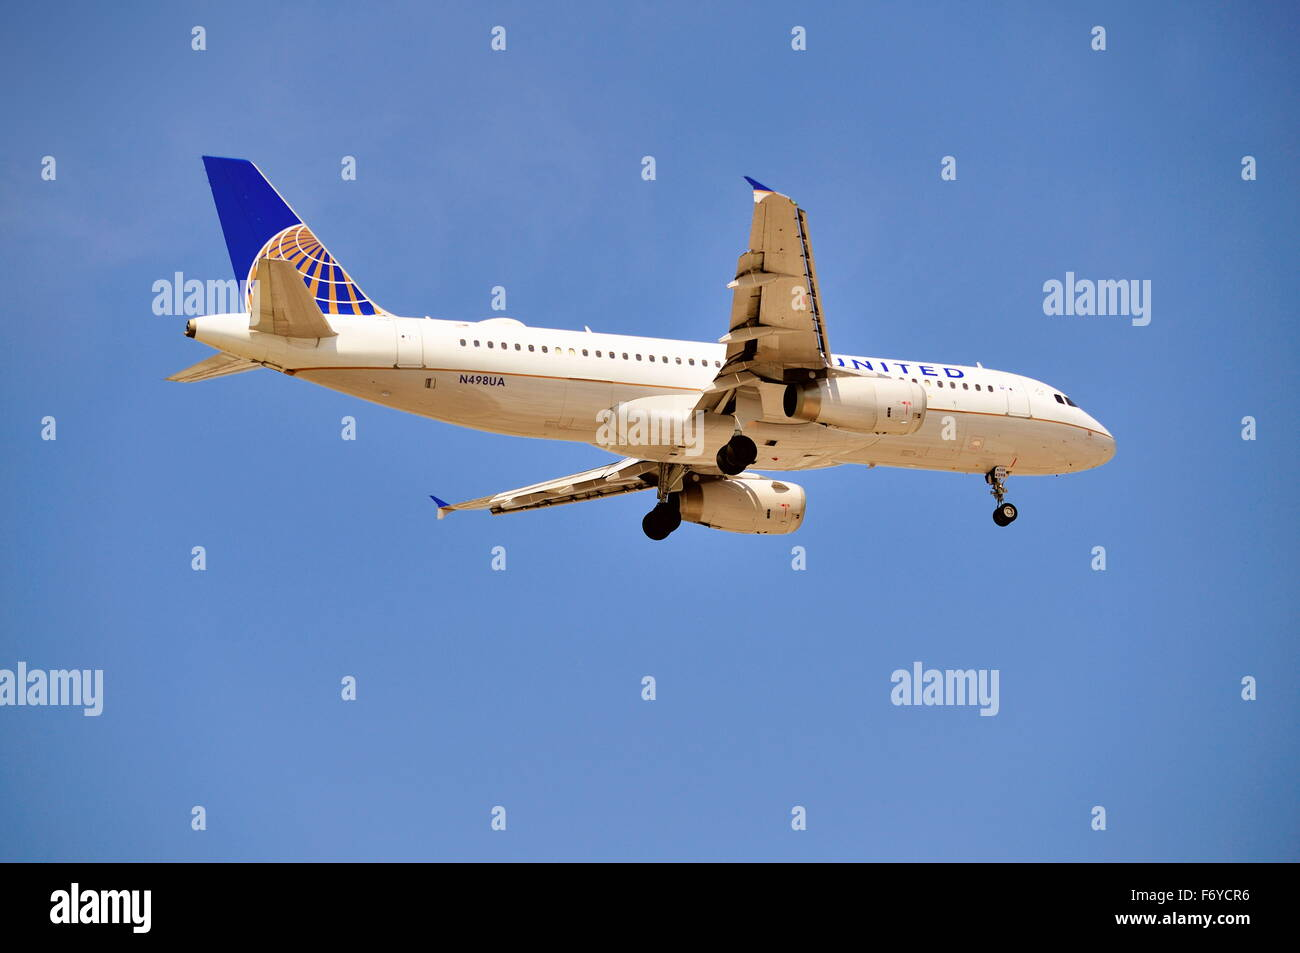 With its landing gear down and locked, a United Airlines Airbus A320 jet makes its final approach before landing - Stock Image